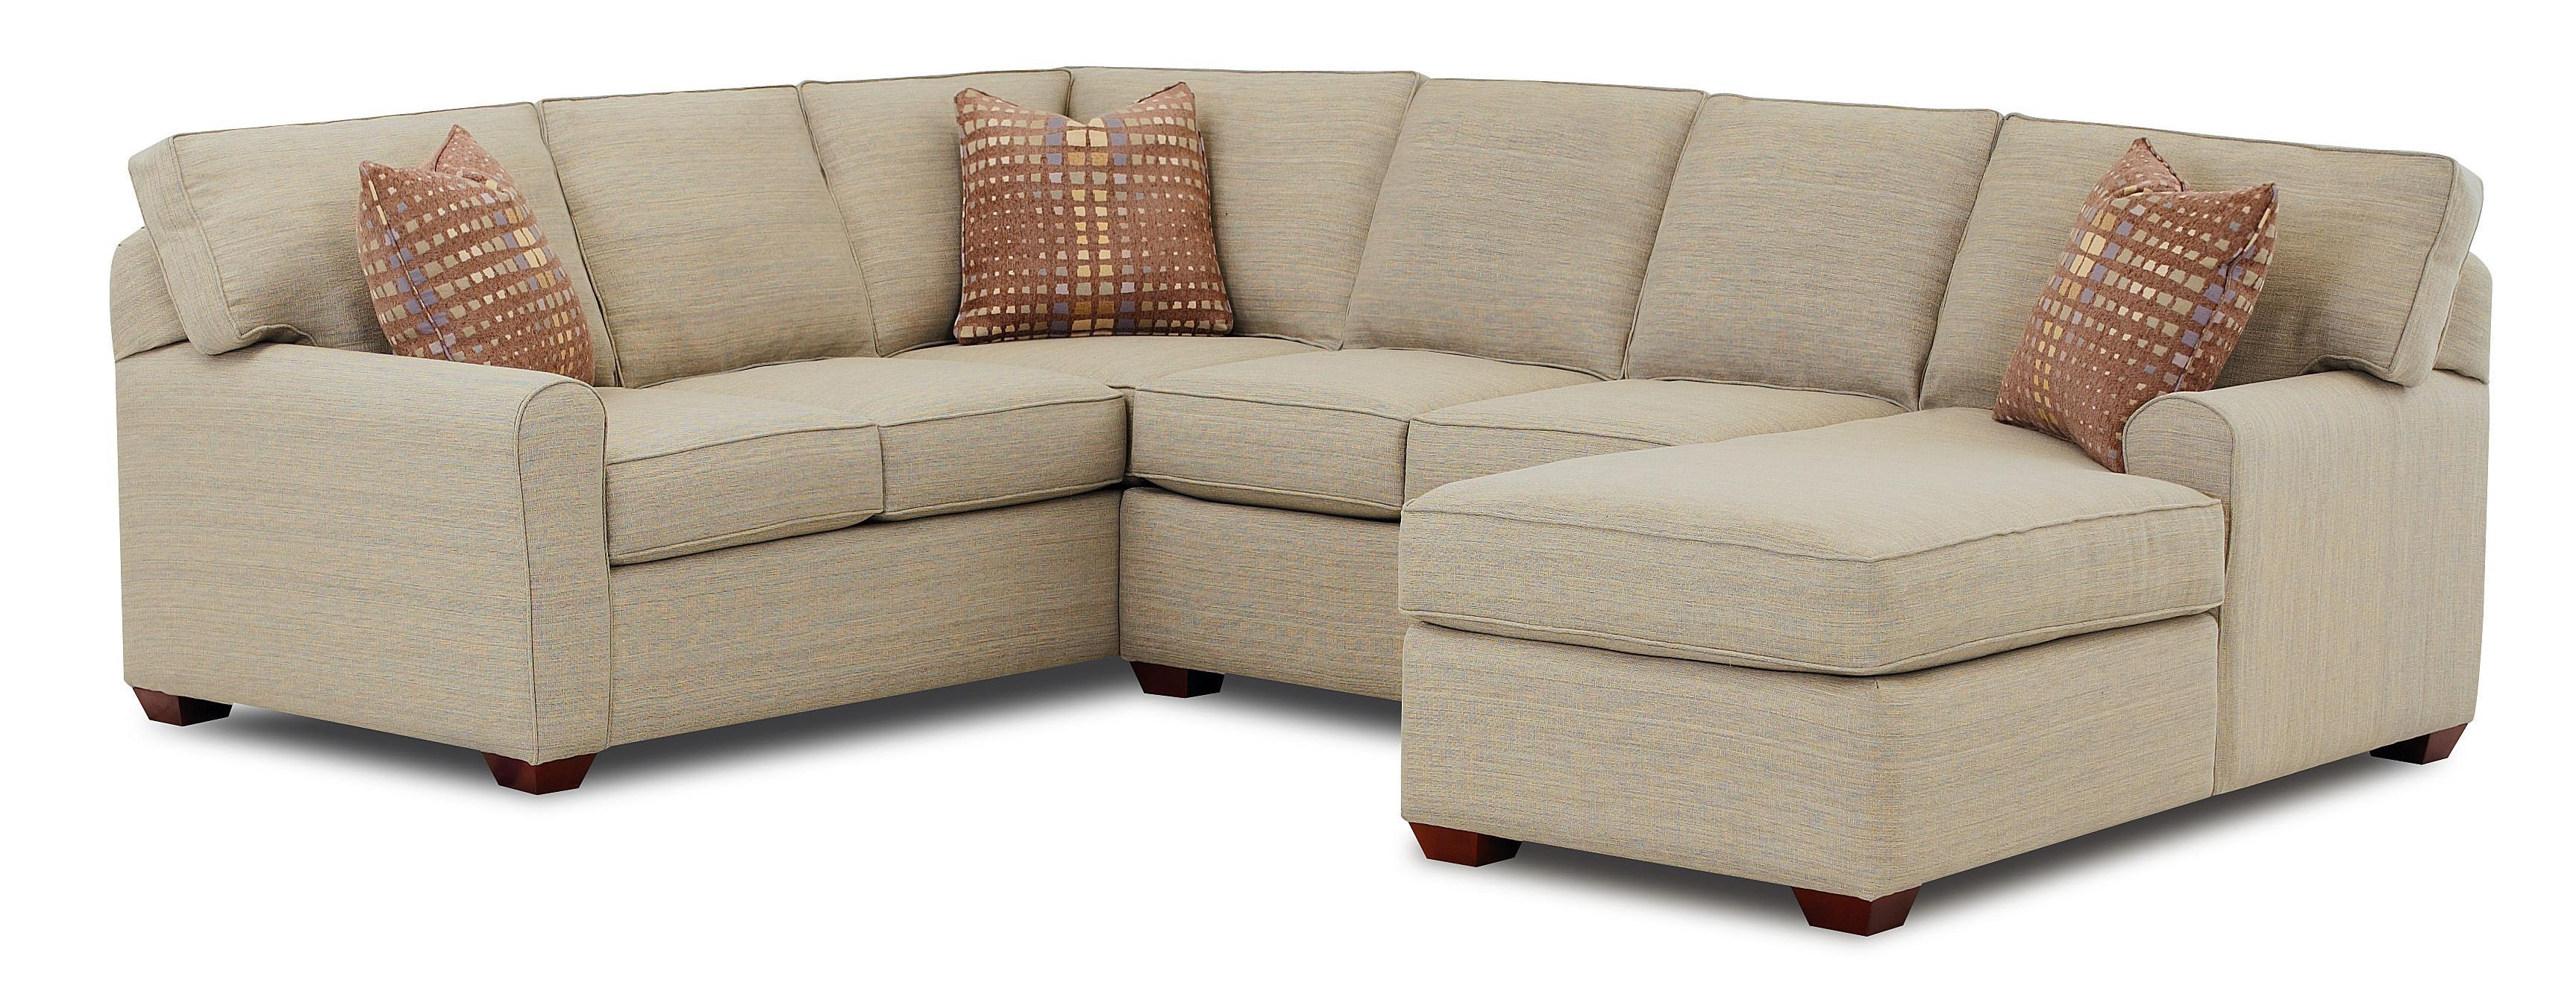 Sofas: Macys Sofa Bed | Sectional Sofa Pull Out Bed | Sleeper Sofa Regarding Pull Out Sectional (Image 19 of 20)